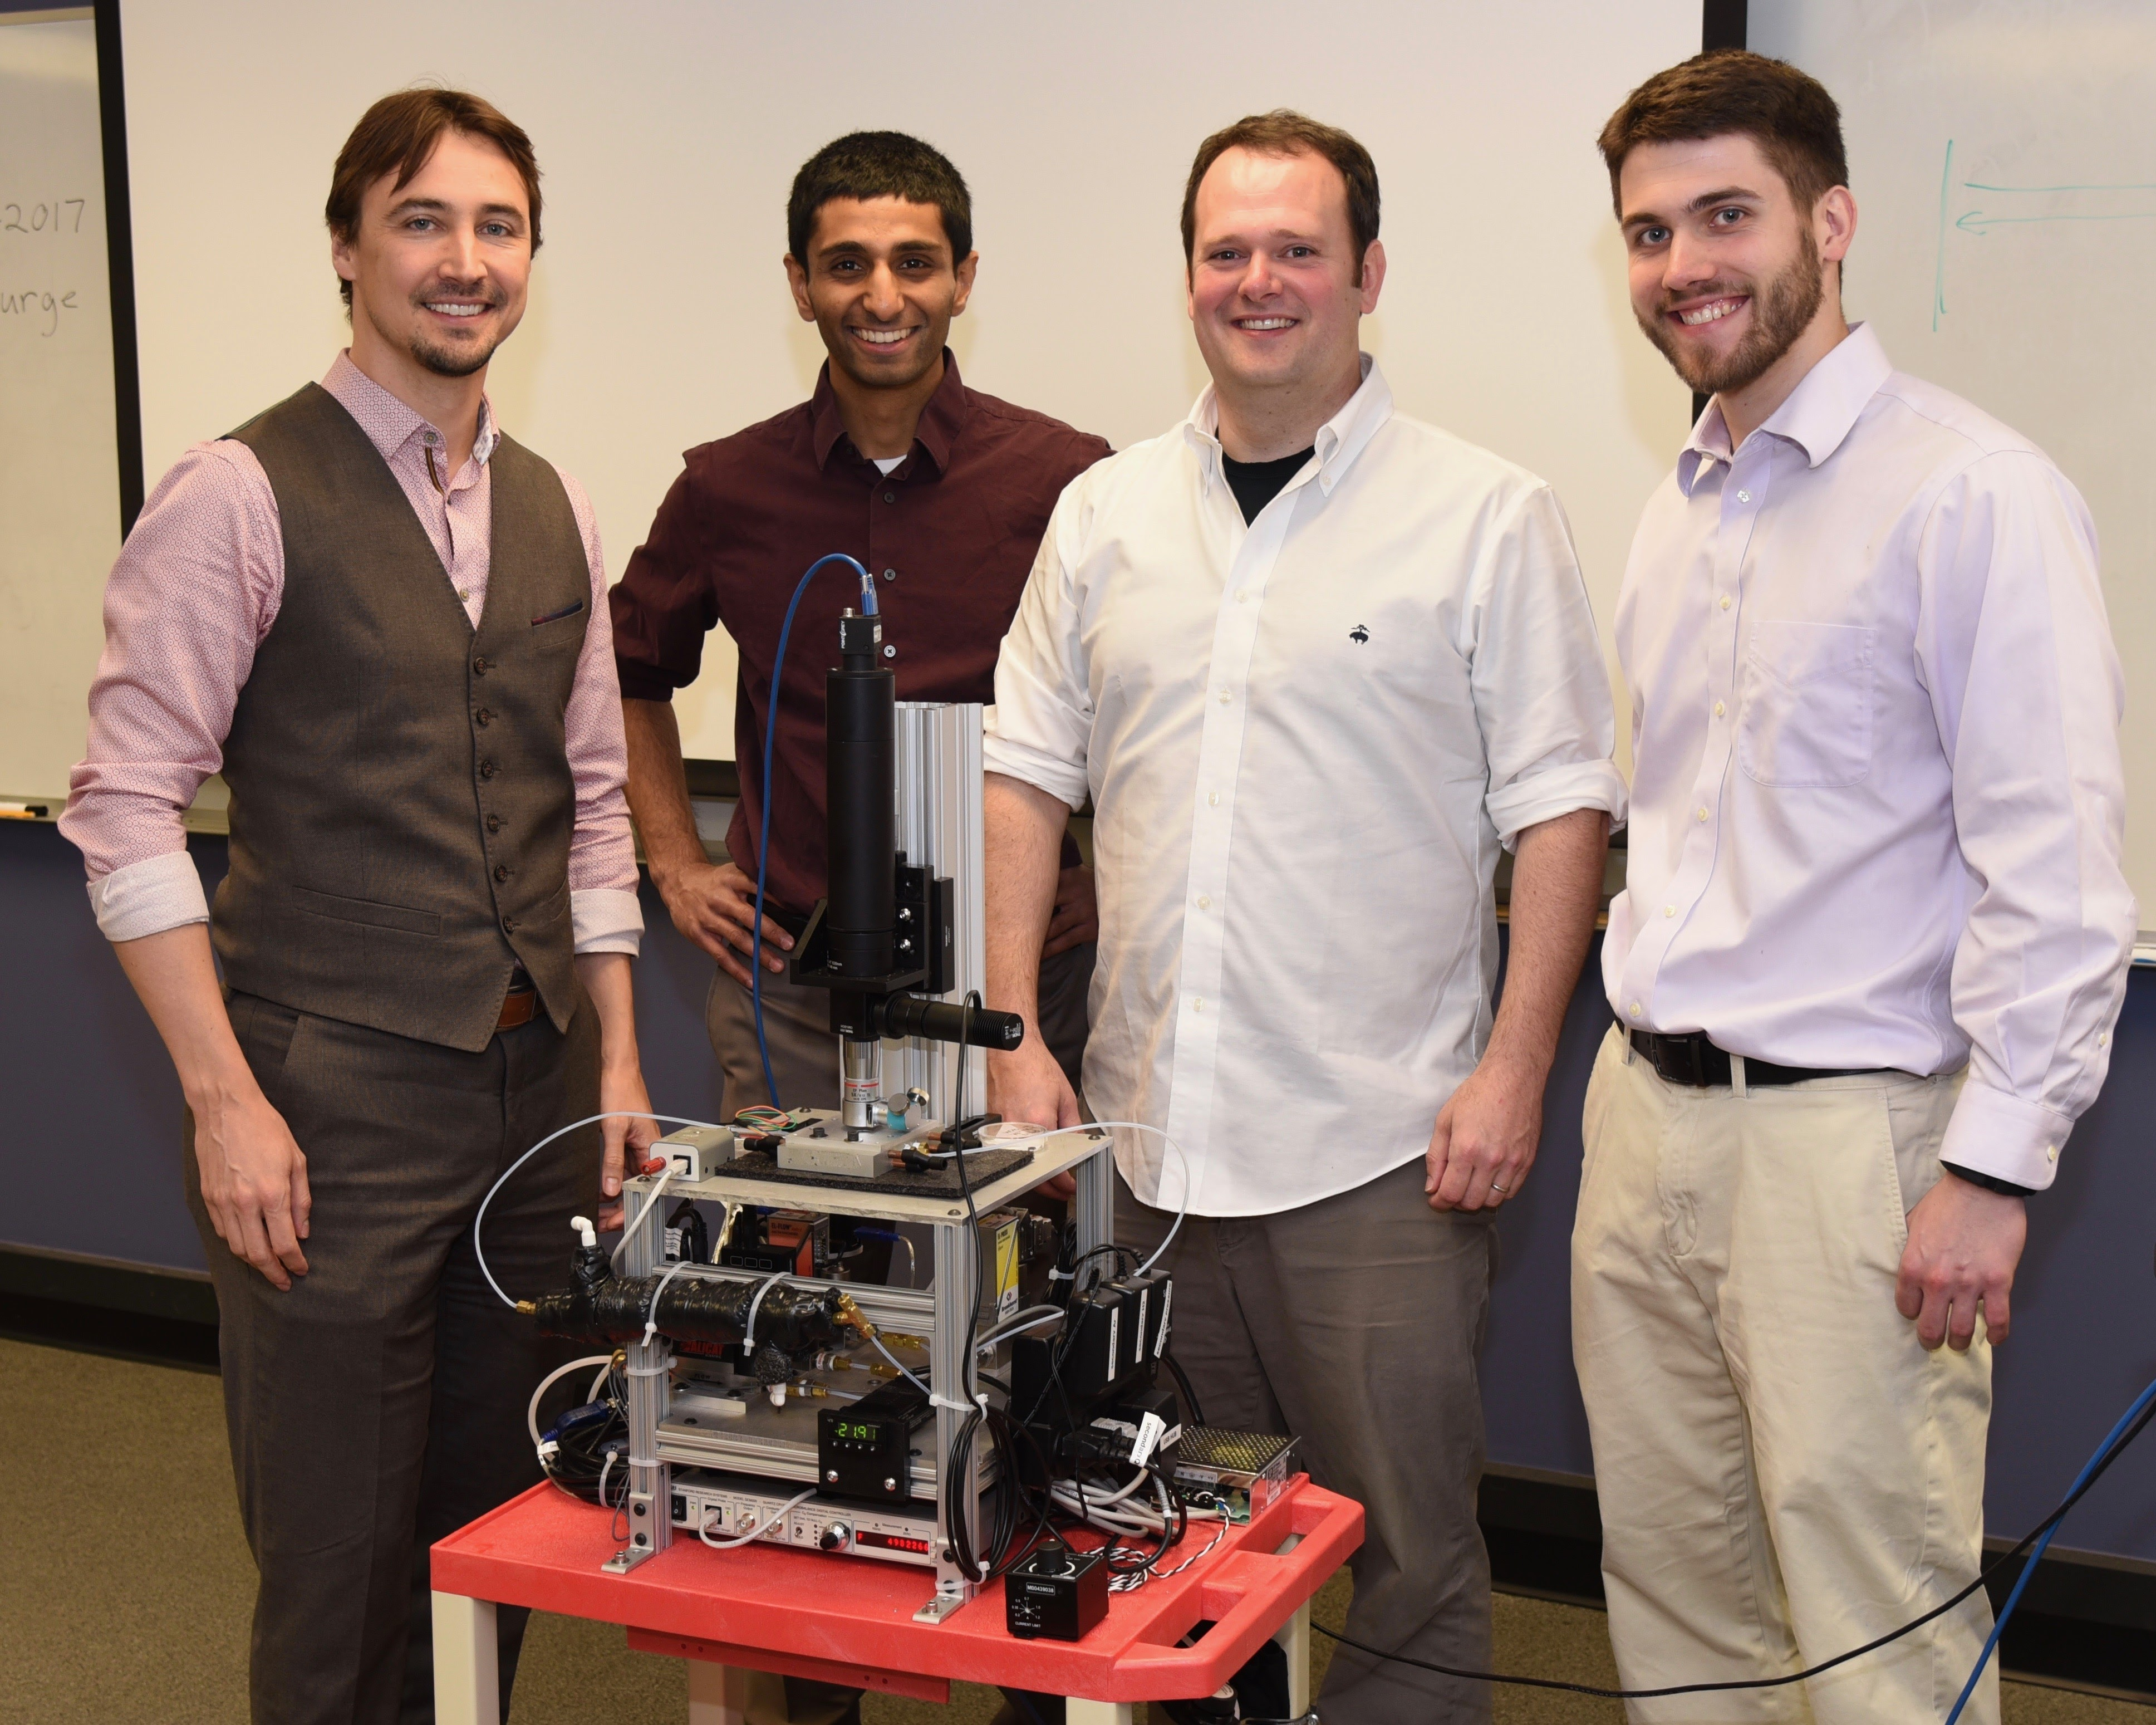 University of Maryland team members (left to right): Jeremy Munday, Tarun Narayan, Joe Murray, and Kevin Palm. (Photo by Matt Trevethick)